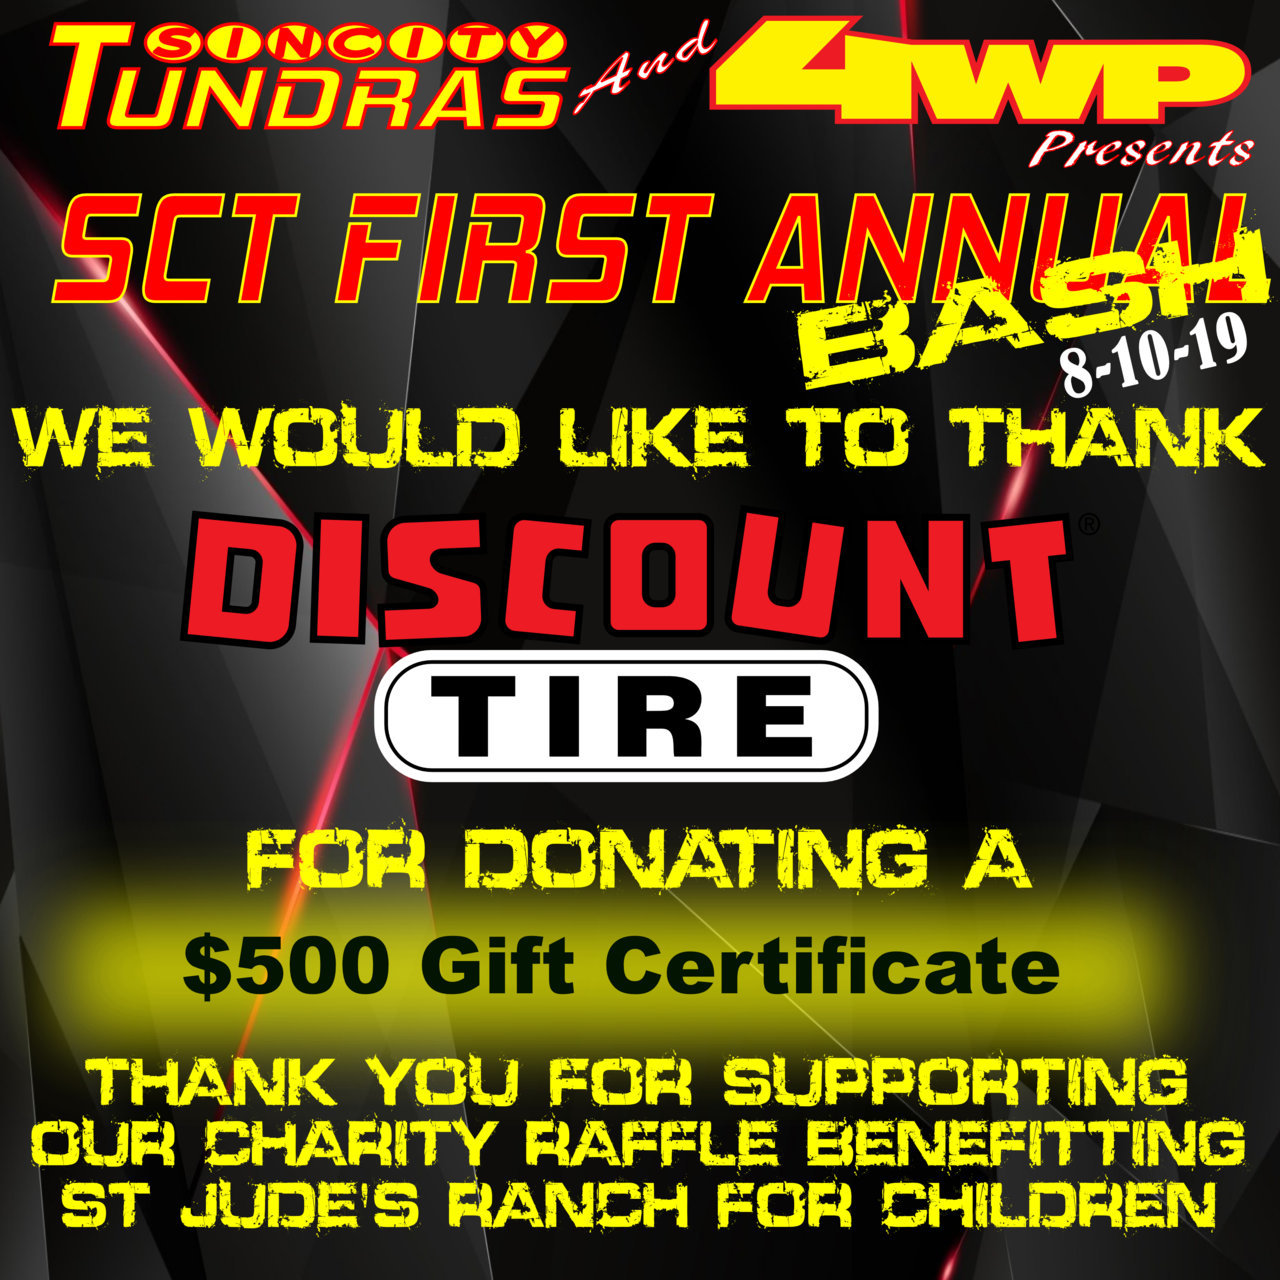 SCT First Annual Bash Coroporate Sponsor Discount Tire.jpg